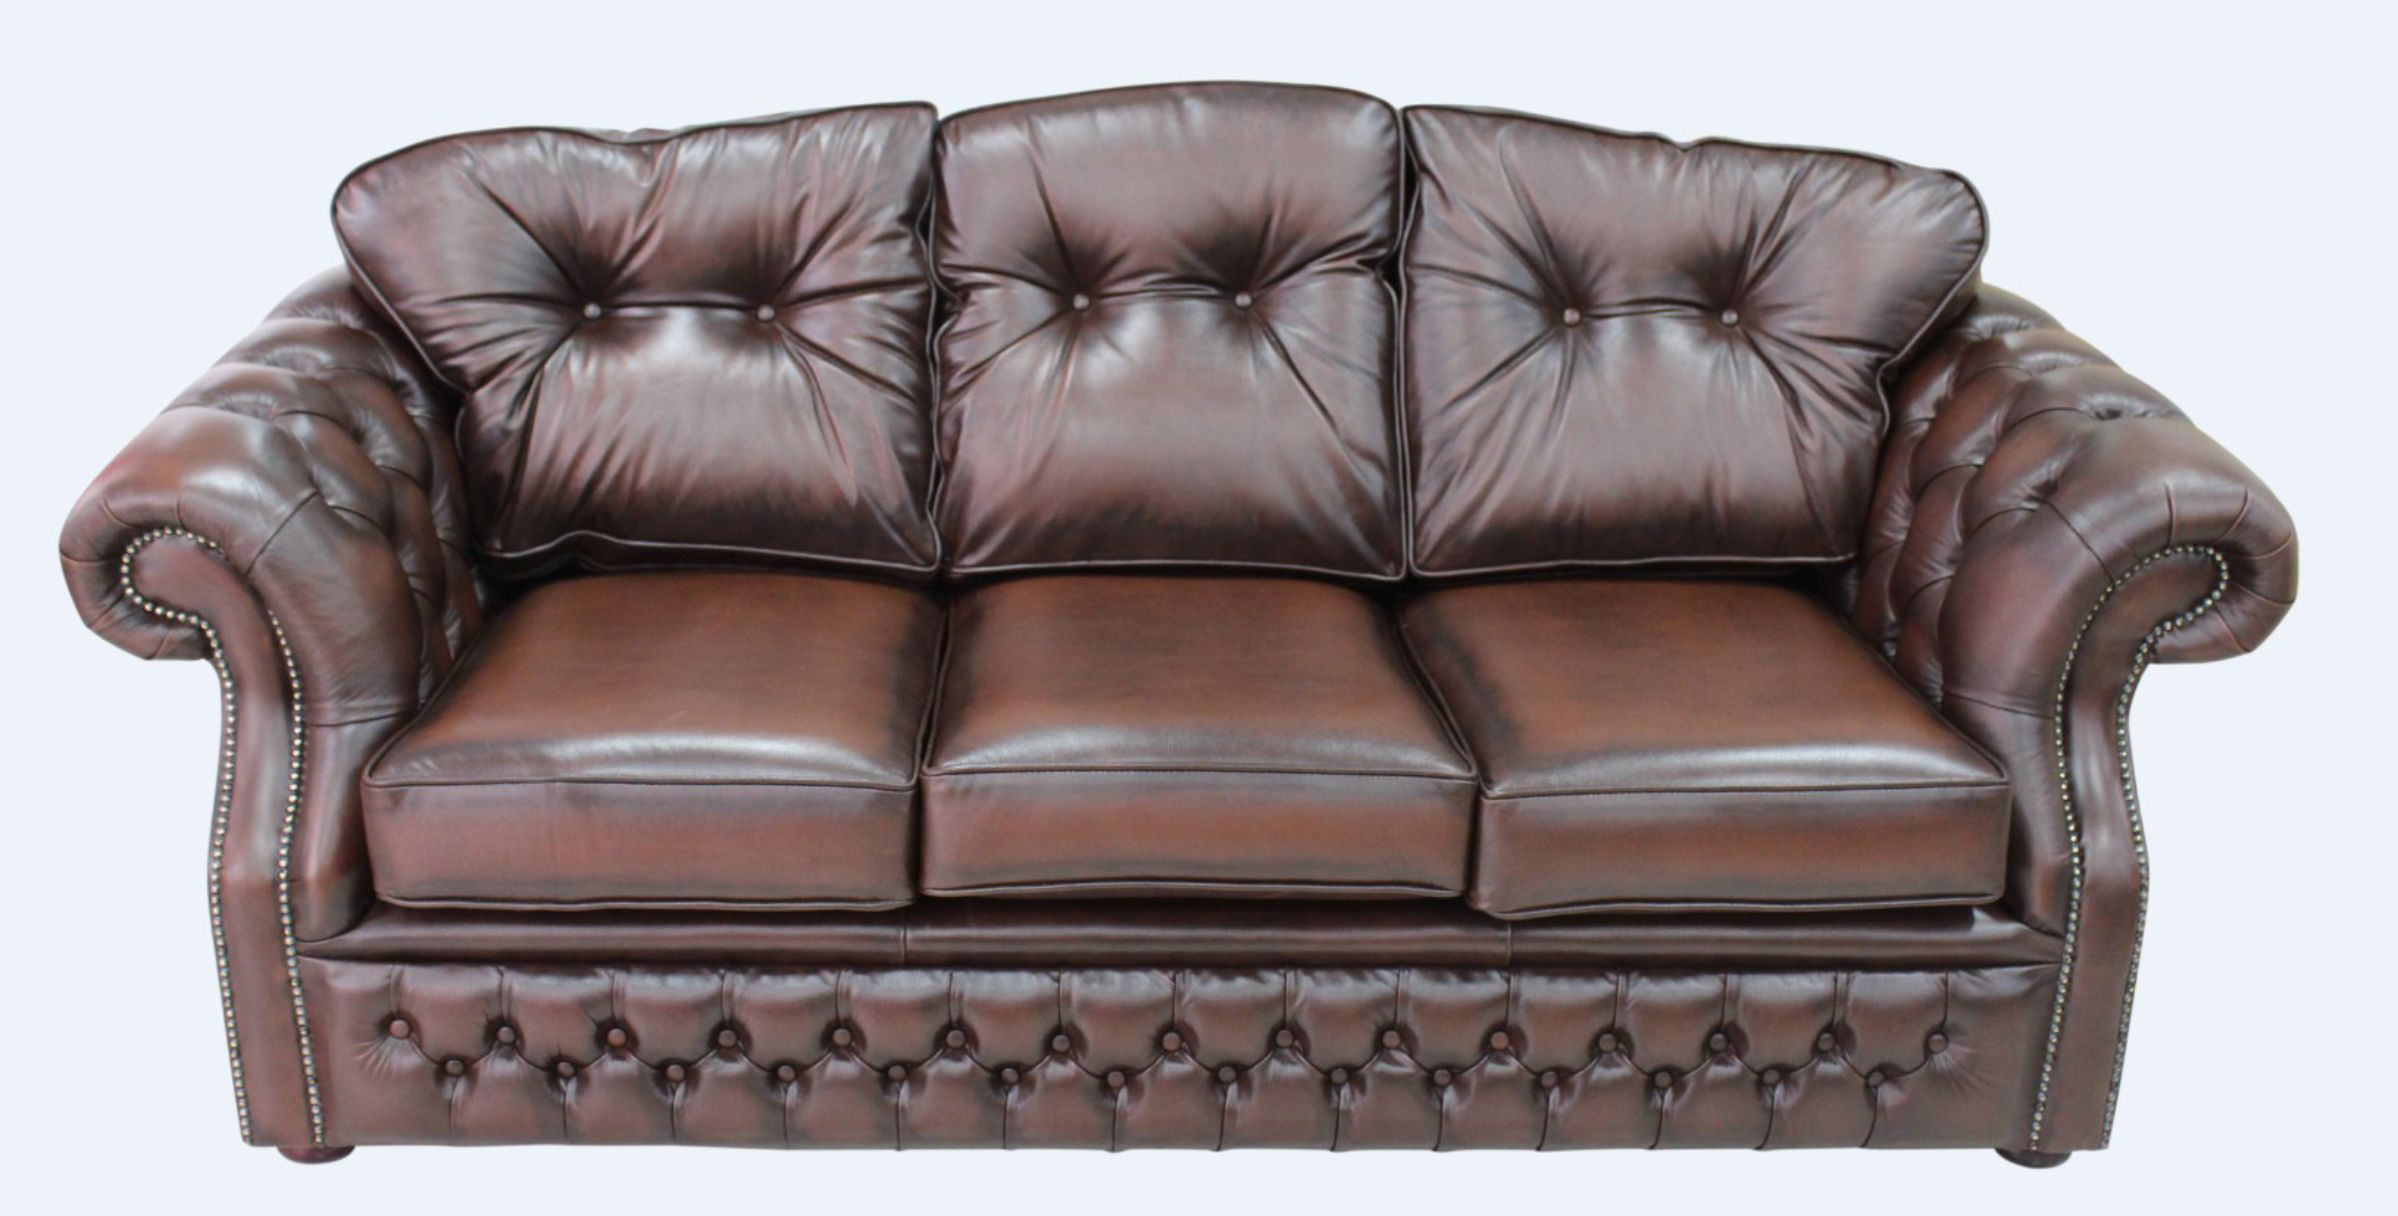 Chesterfield Era Brown Leather Traditional 3 Seater Settee